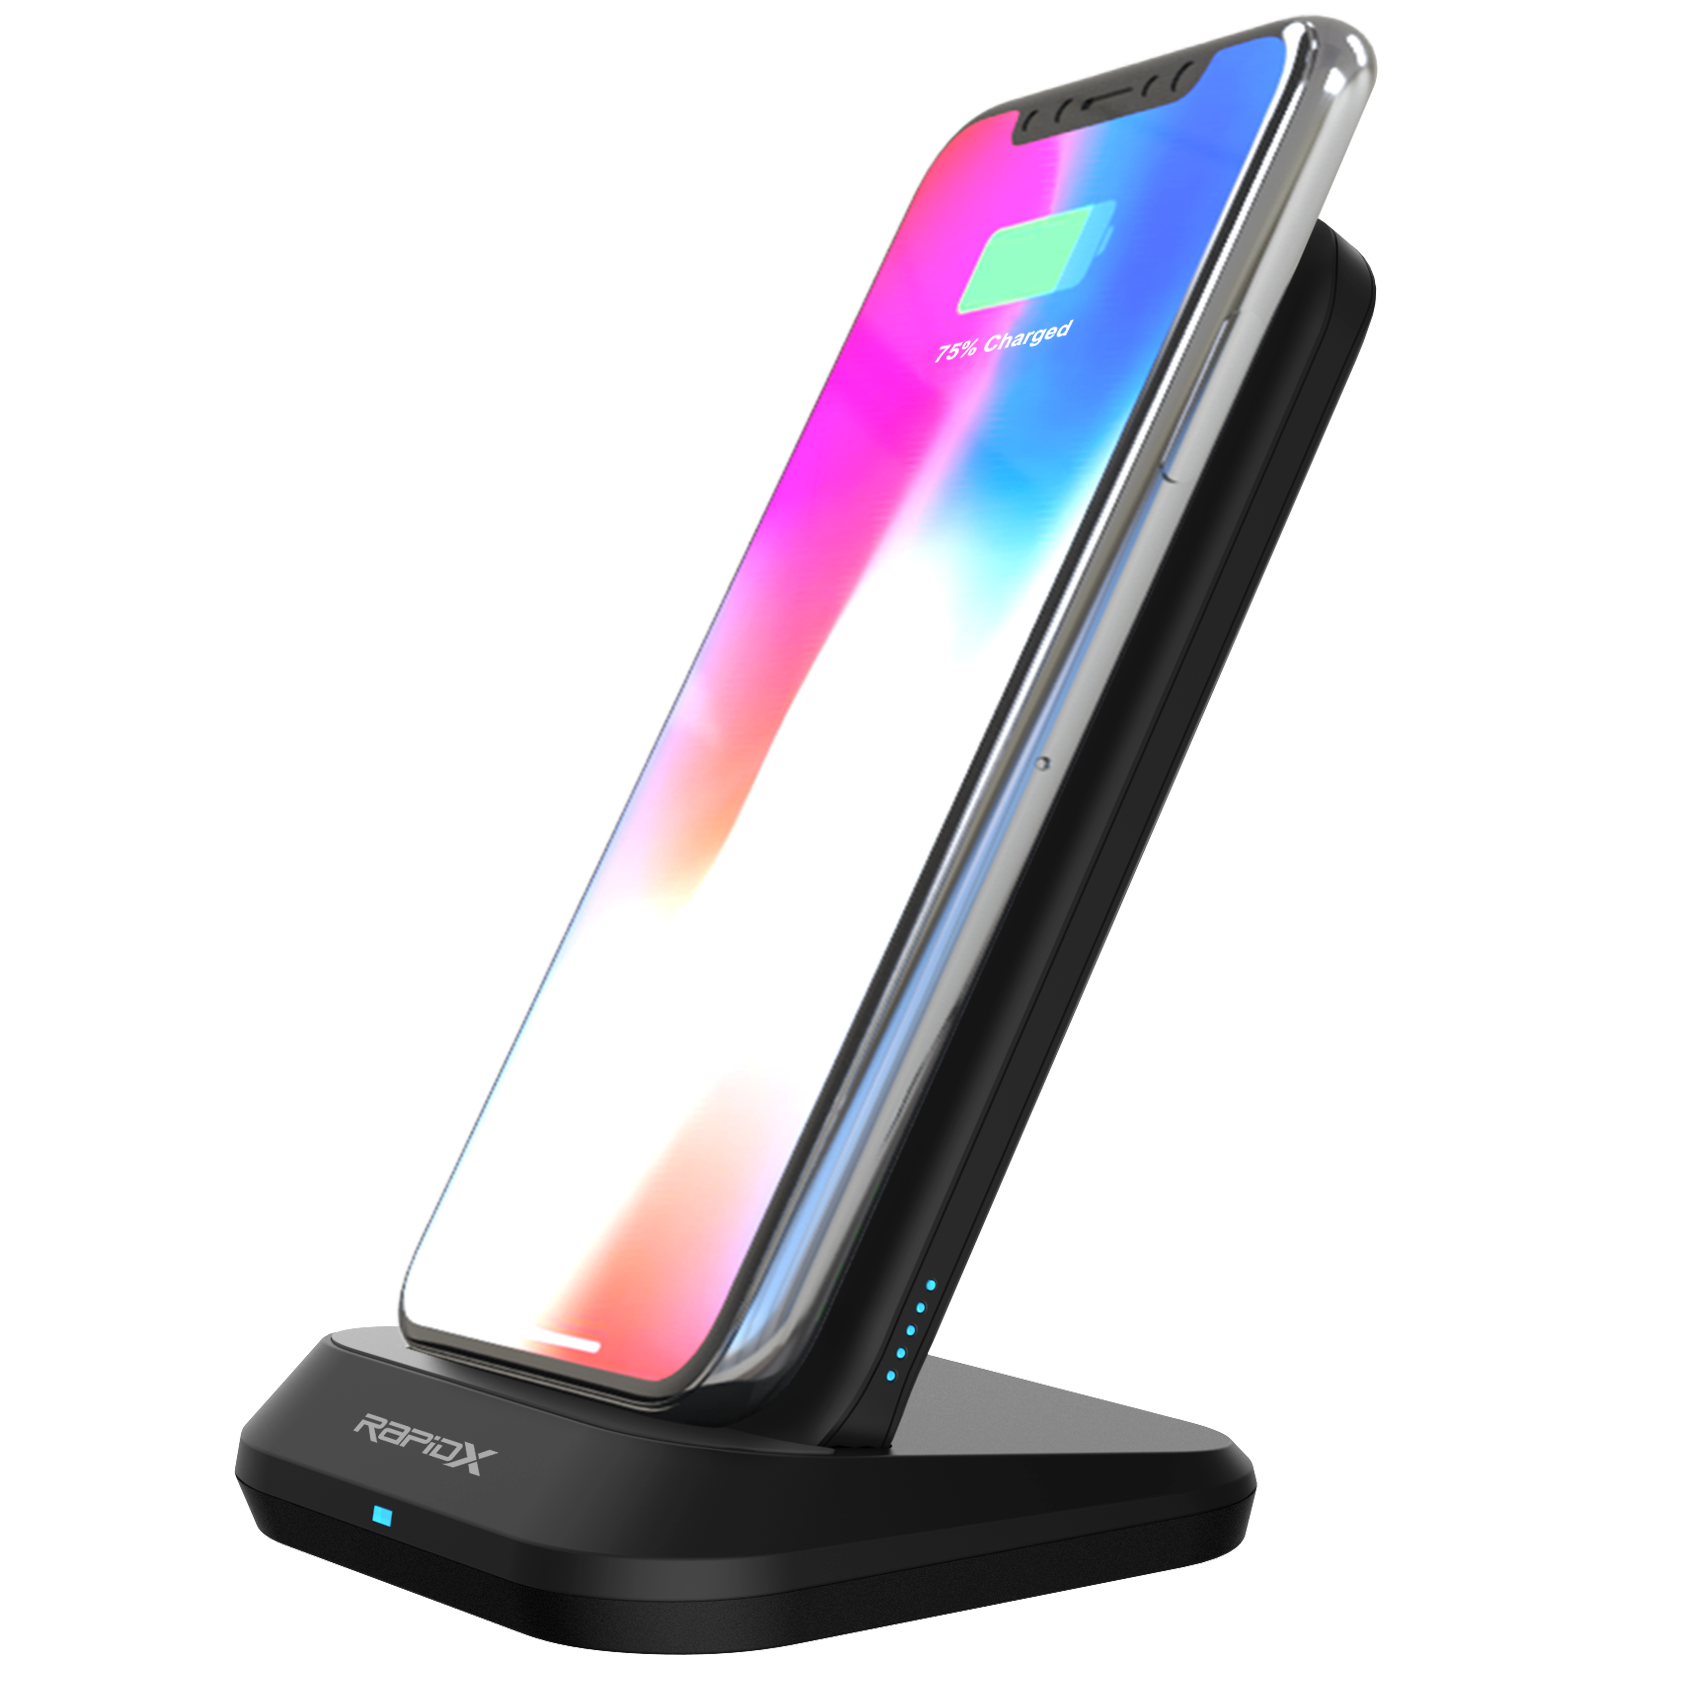 MyPort 10,000 mAh Power Bank, 10W Wireless Charger, & Stand - Black